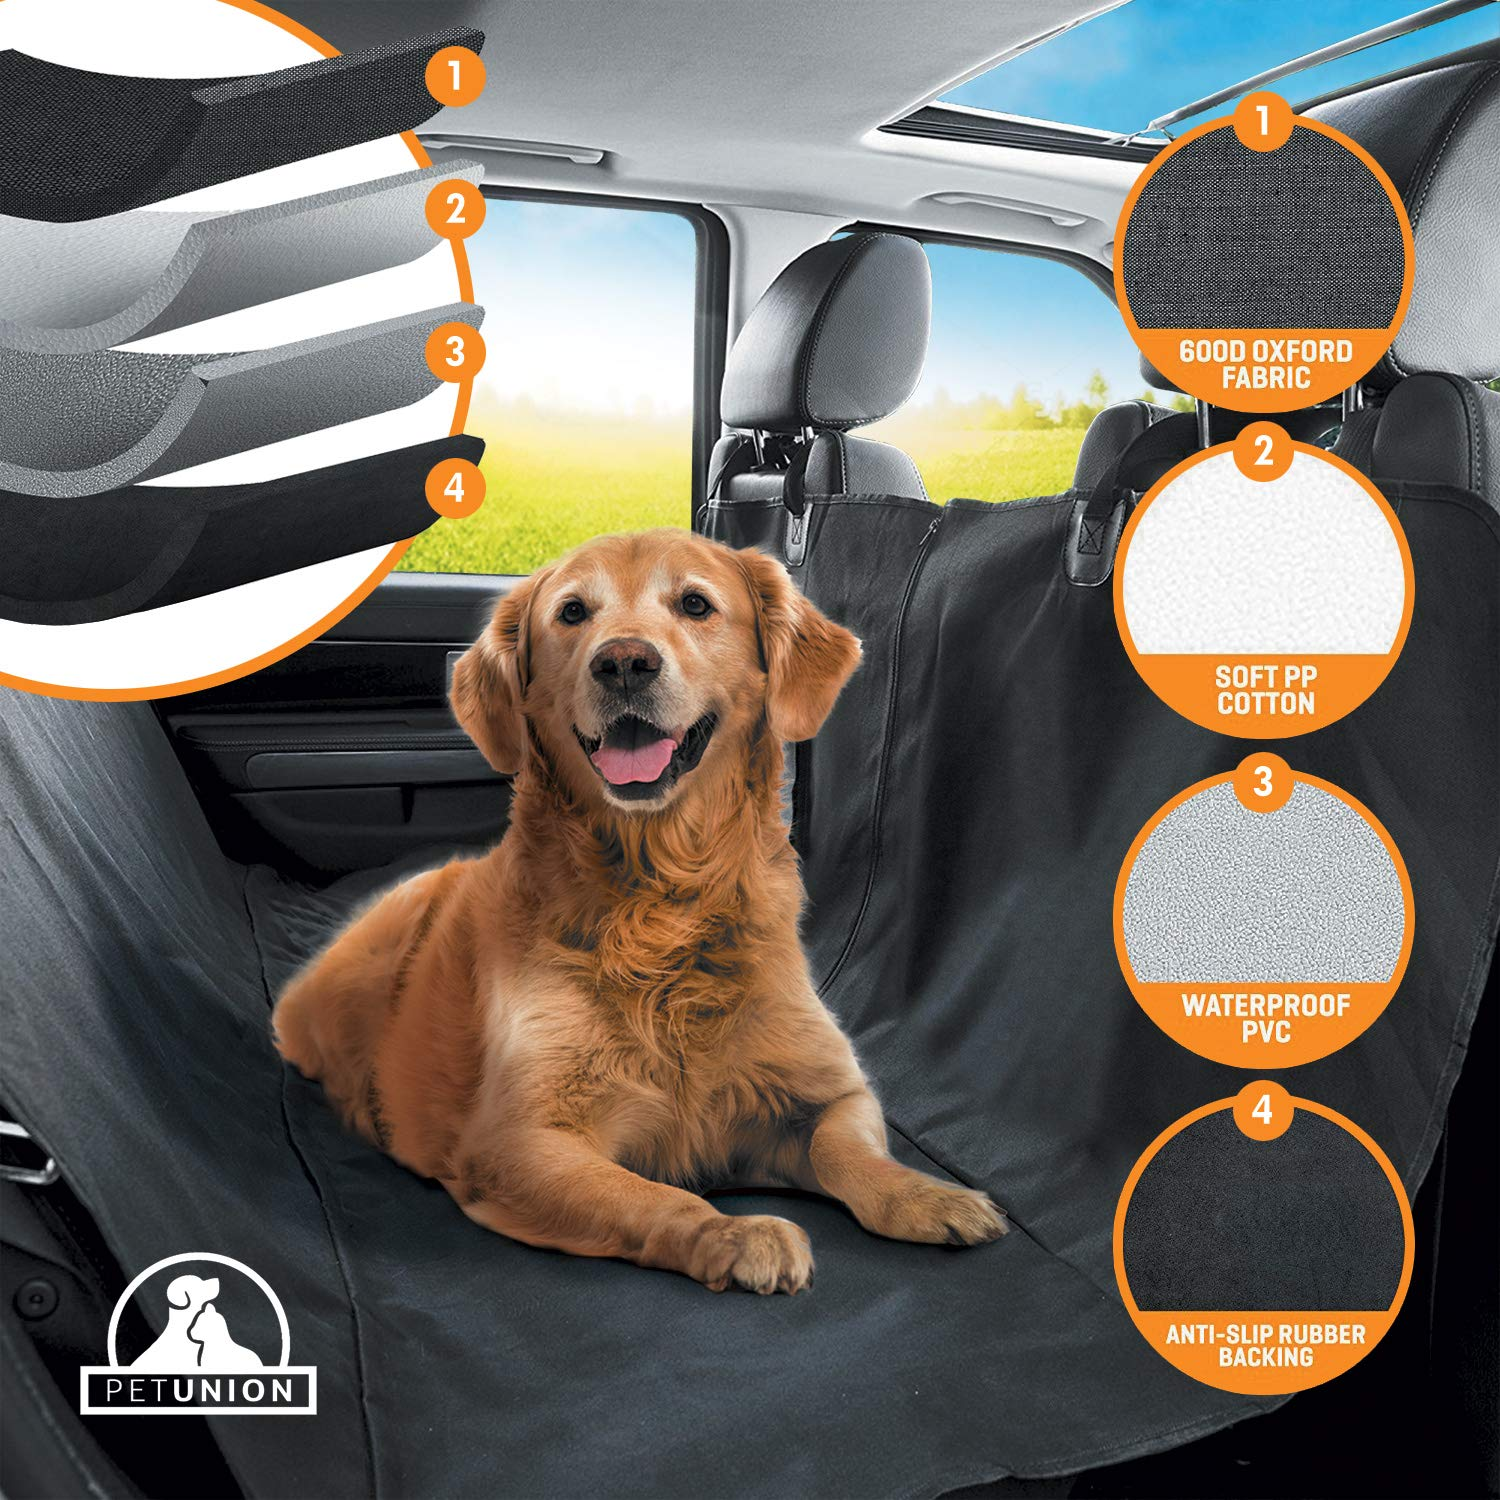 Pet Union Luxury Car Seat Cover/Hammock for Rear Bench (for Large & Small Dogs), Simple Installation & Easy to Clean, Protect Your Car, 100% Waterproof, Anti-Slip Design, Travel Worry-Free by PetTech